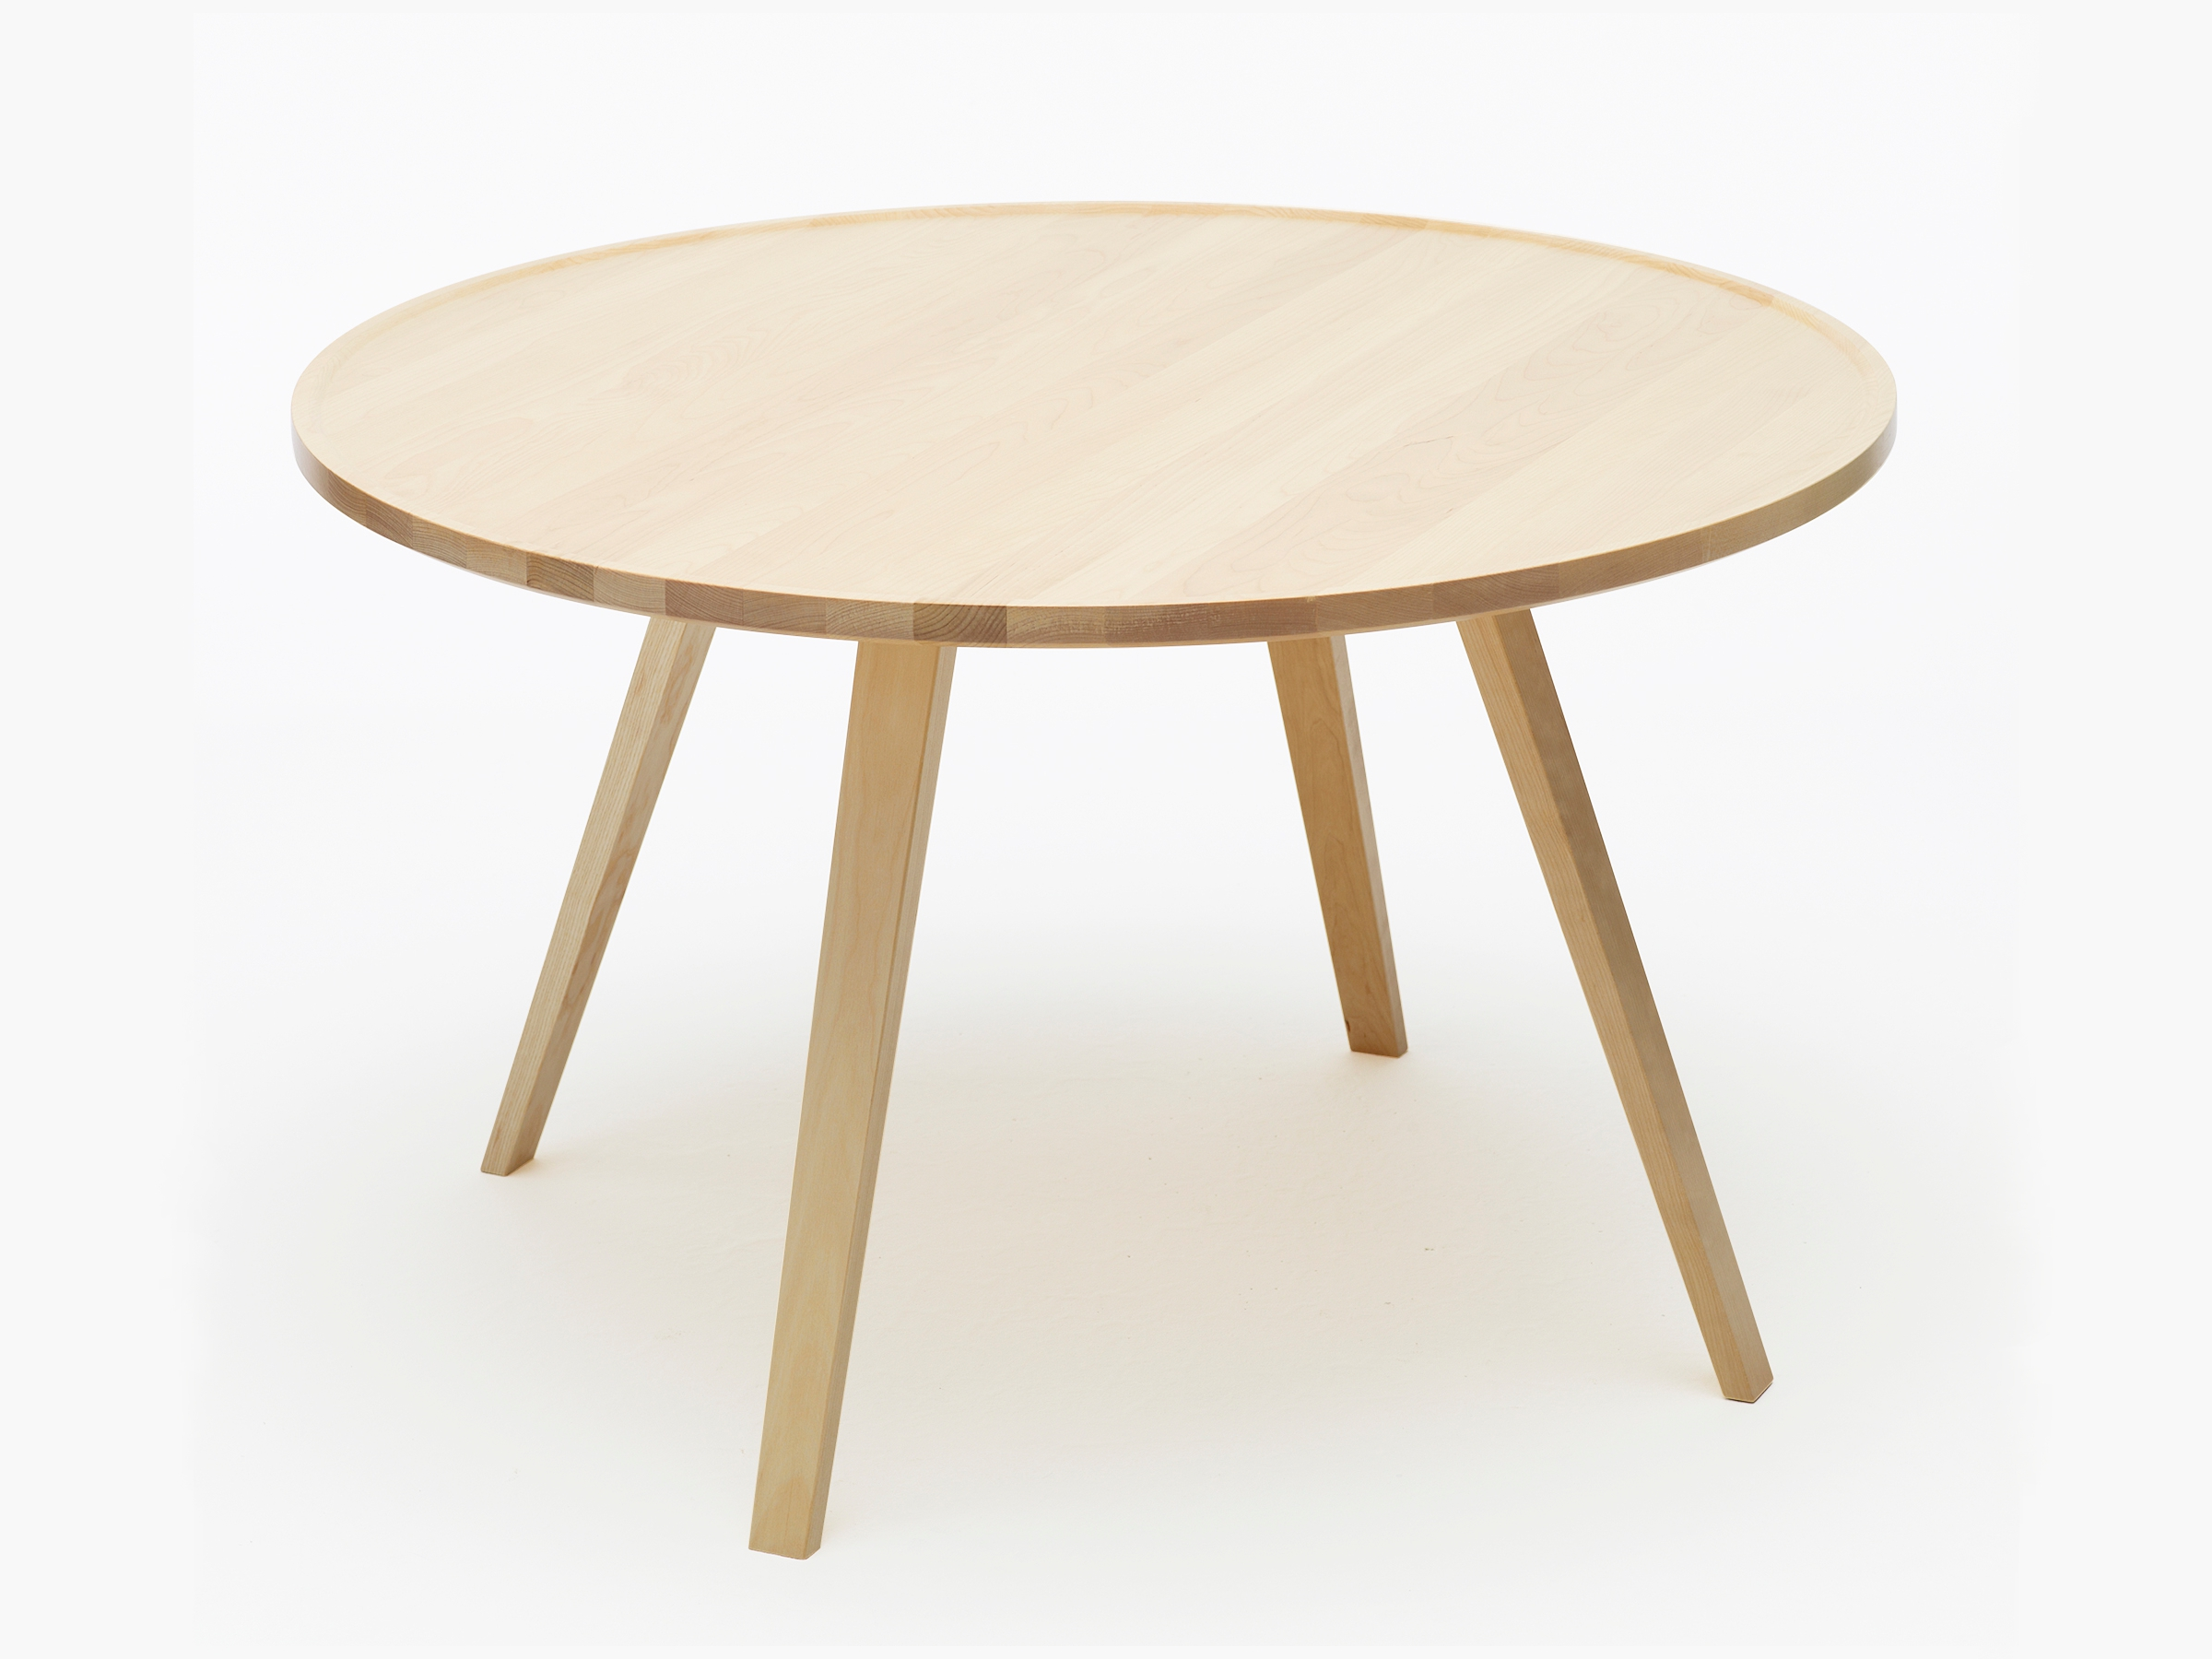 Mill table basse ronde by karl andersson s ner design - Table basse ronde en bois ...